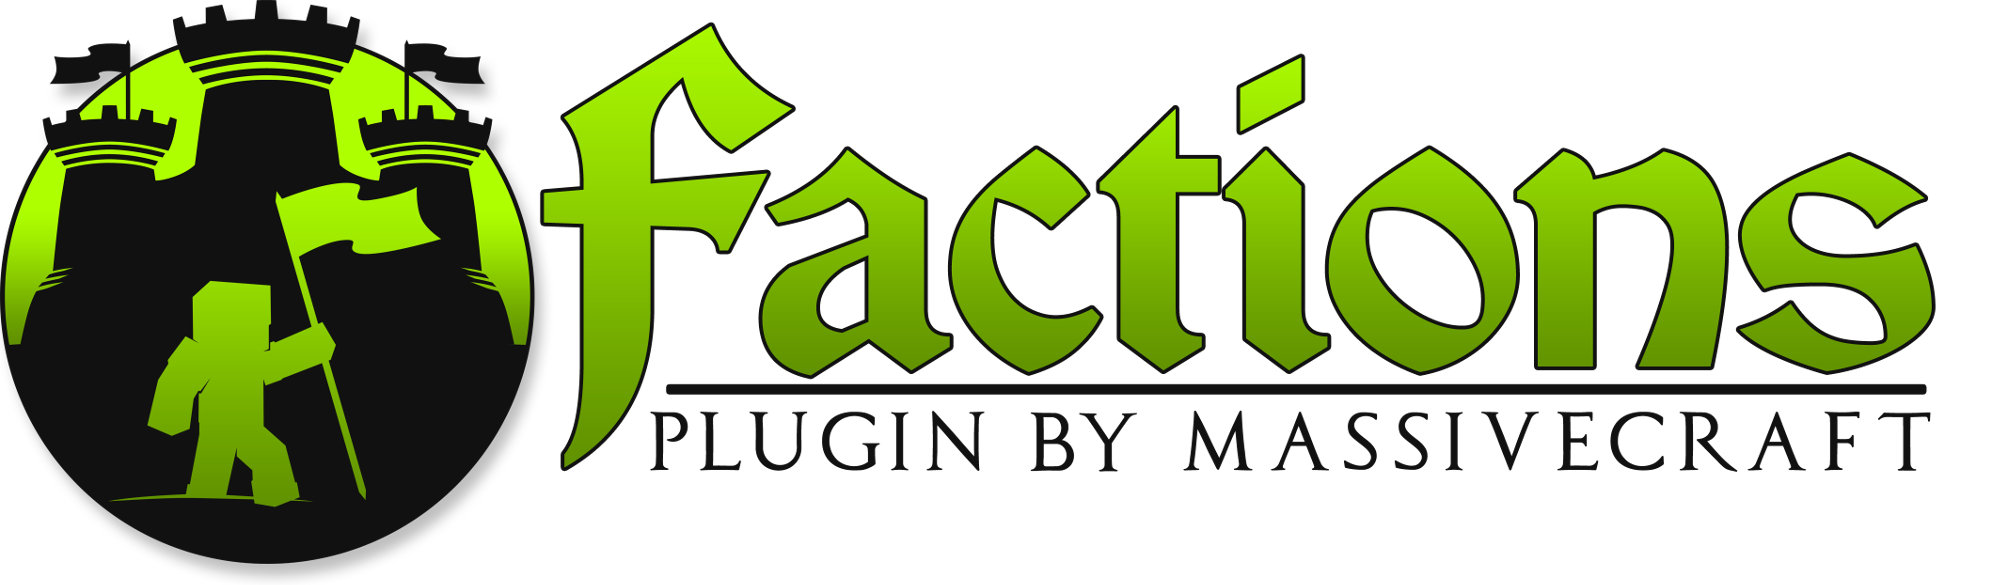 massivecraft-logotype-plugin-factions-2000